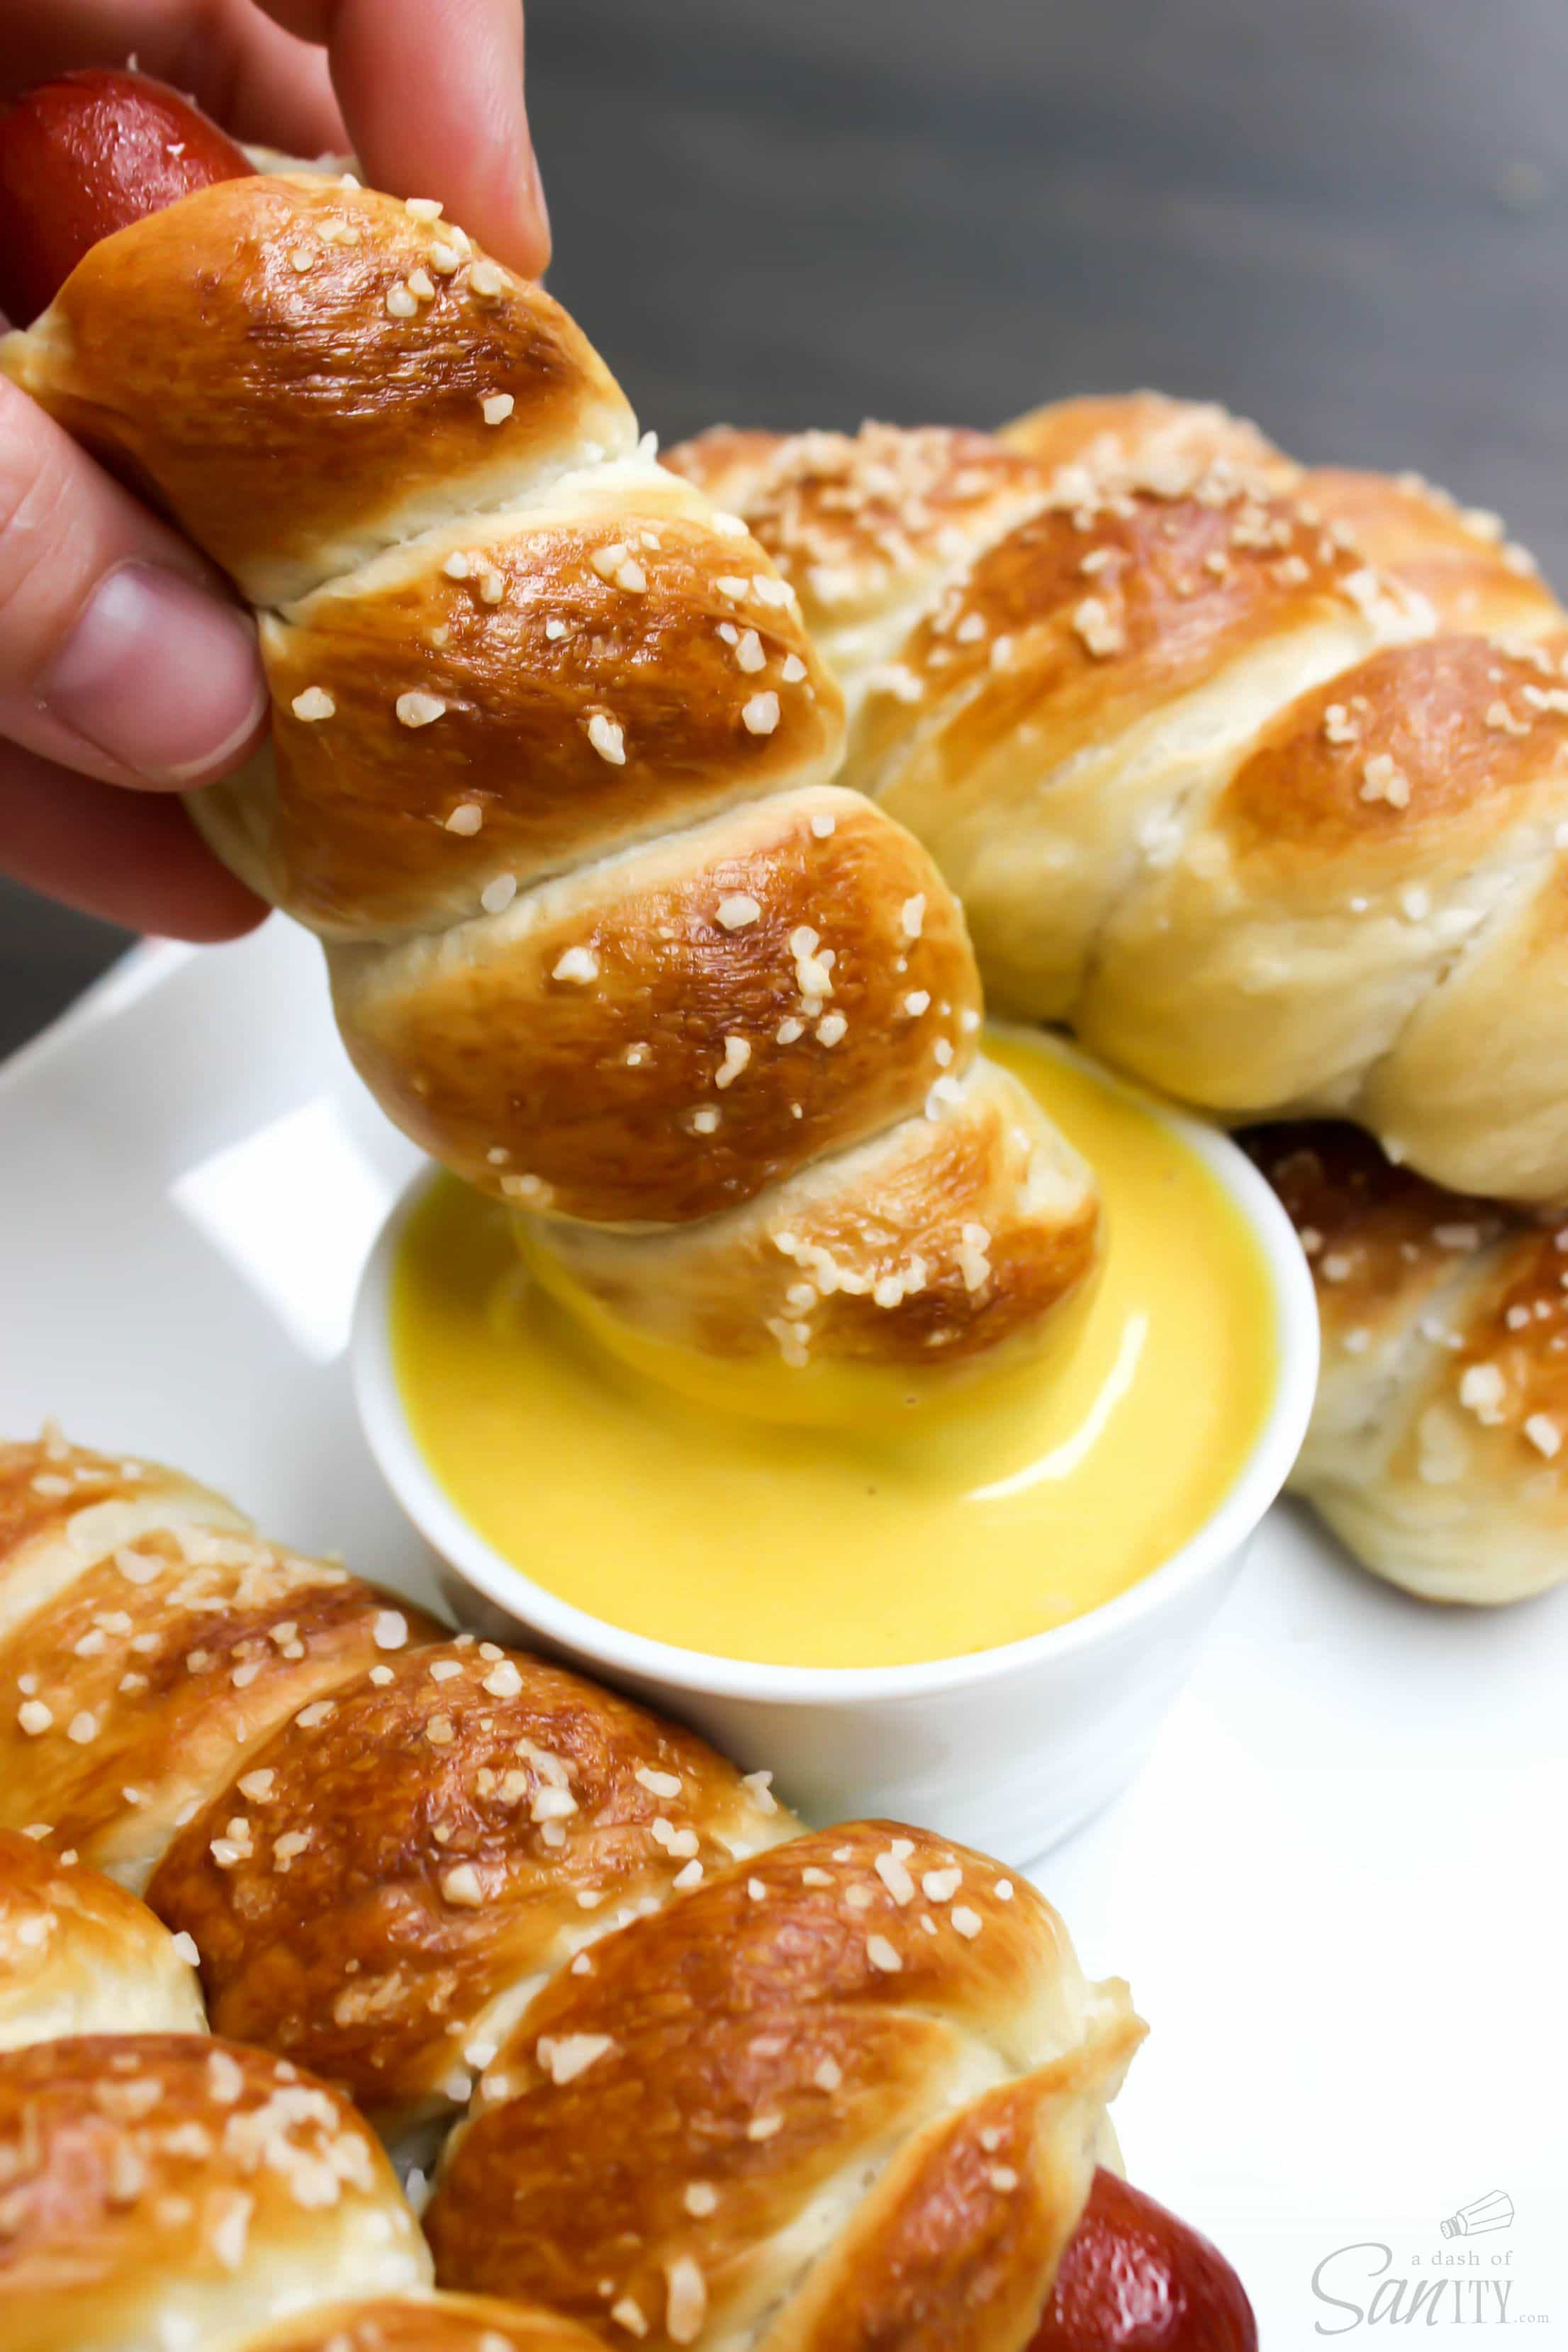 This Honey Mustard Dipping Sauce will soon be smothered all over your next hot dog or hamburger. It also pairs perfectly with these Easy Pretzel Hot Dogs.